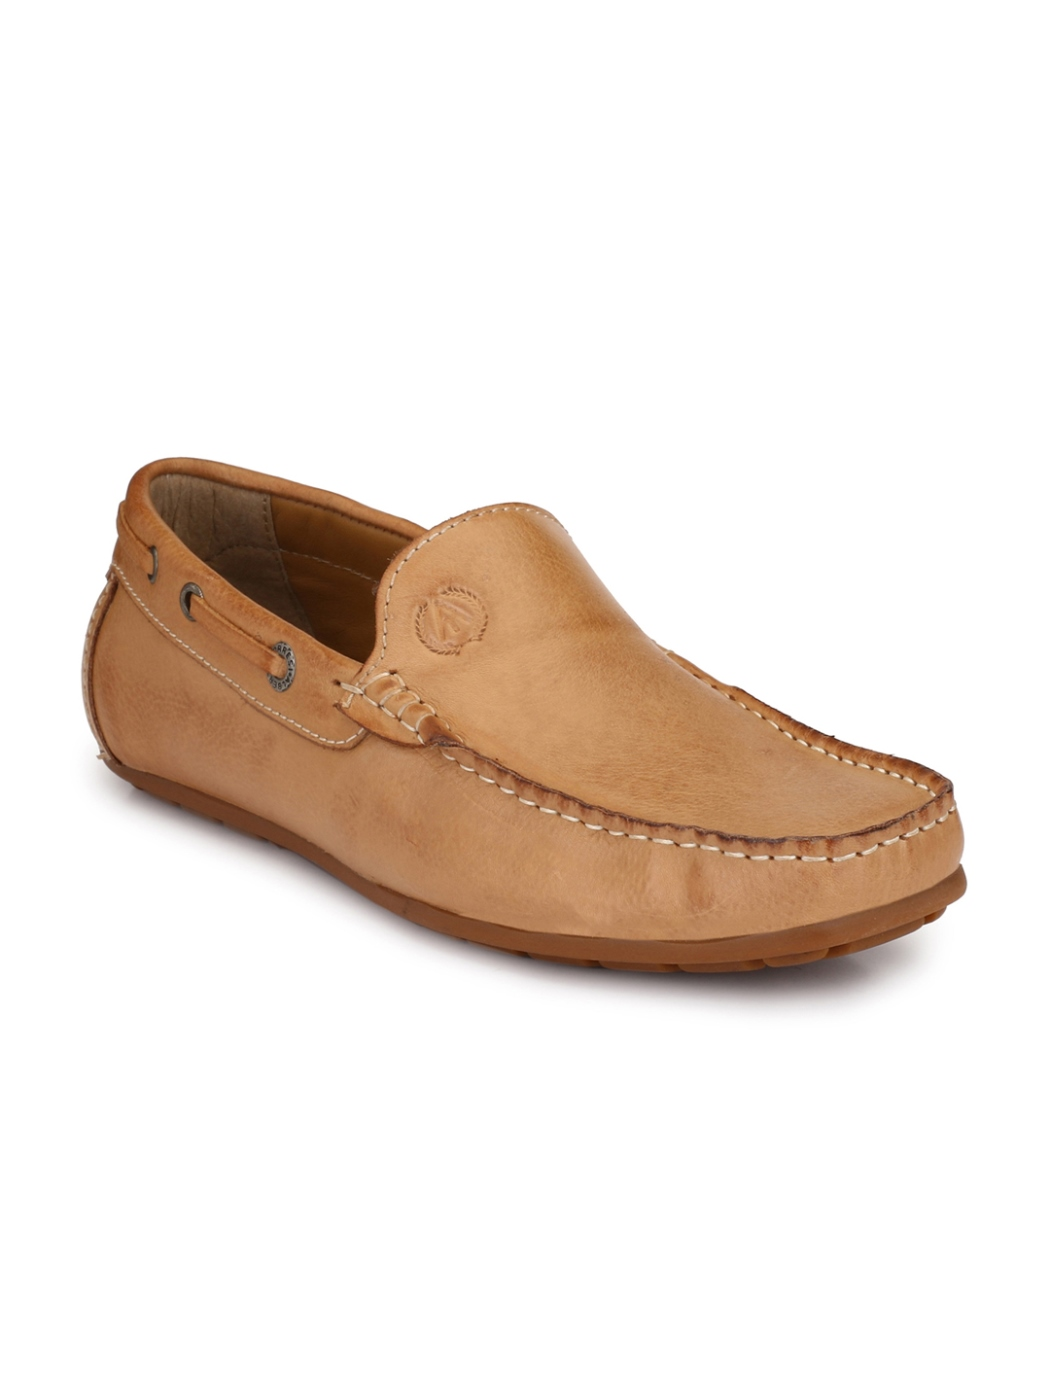 best quality men leather loafers shoes anti slip sole classic brown color